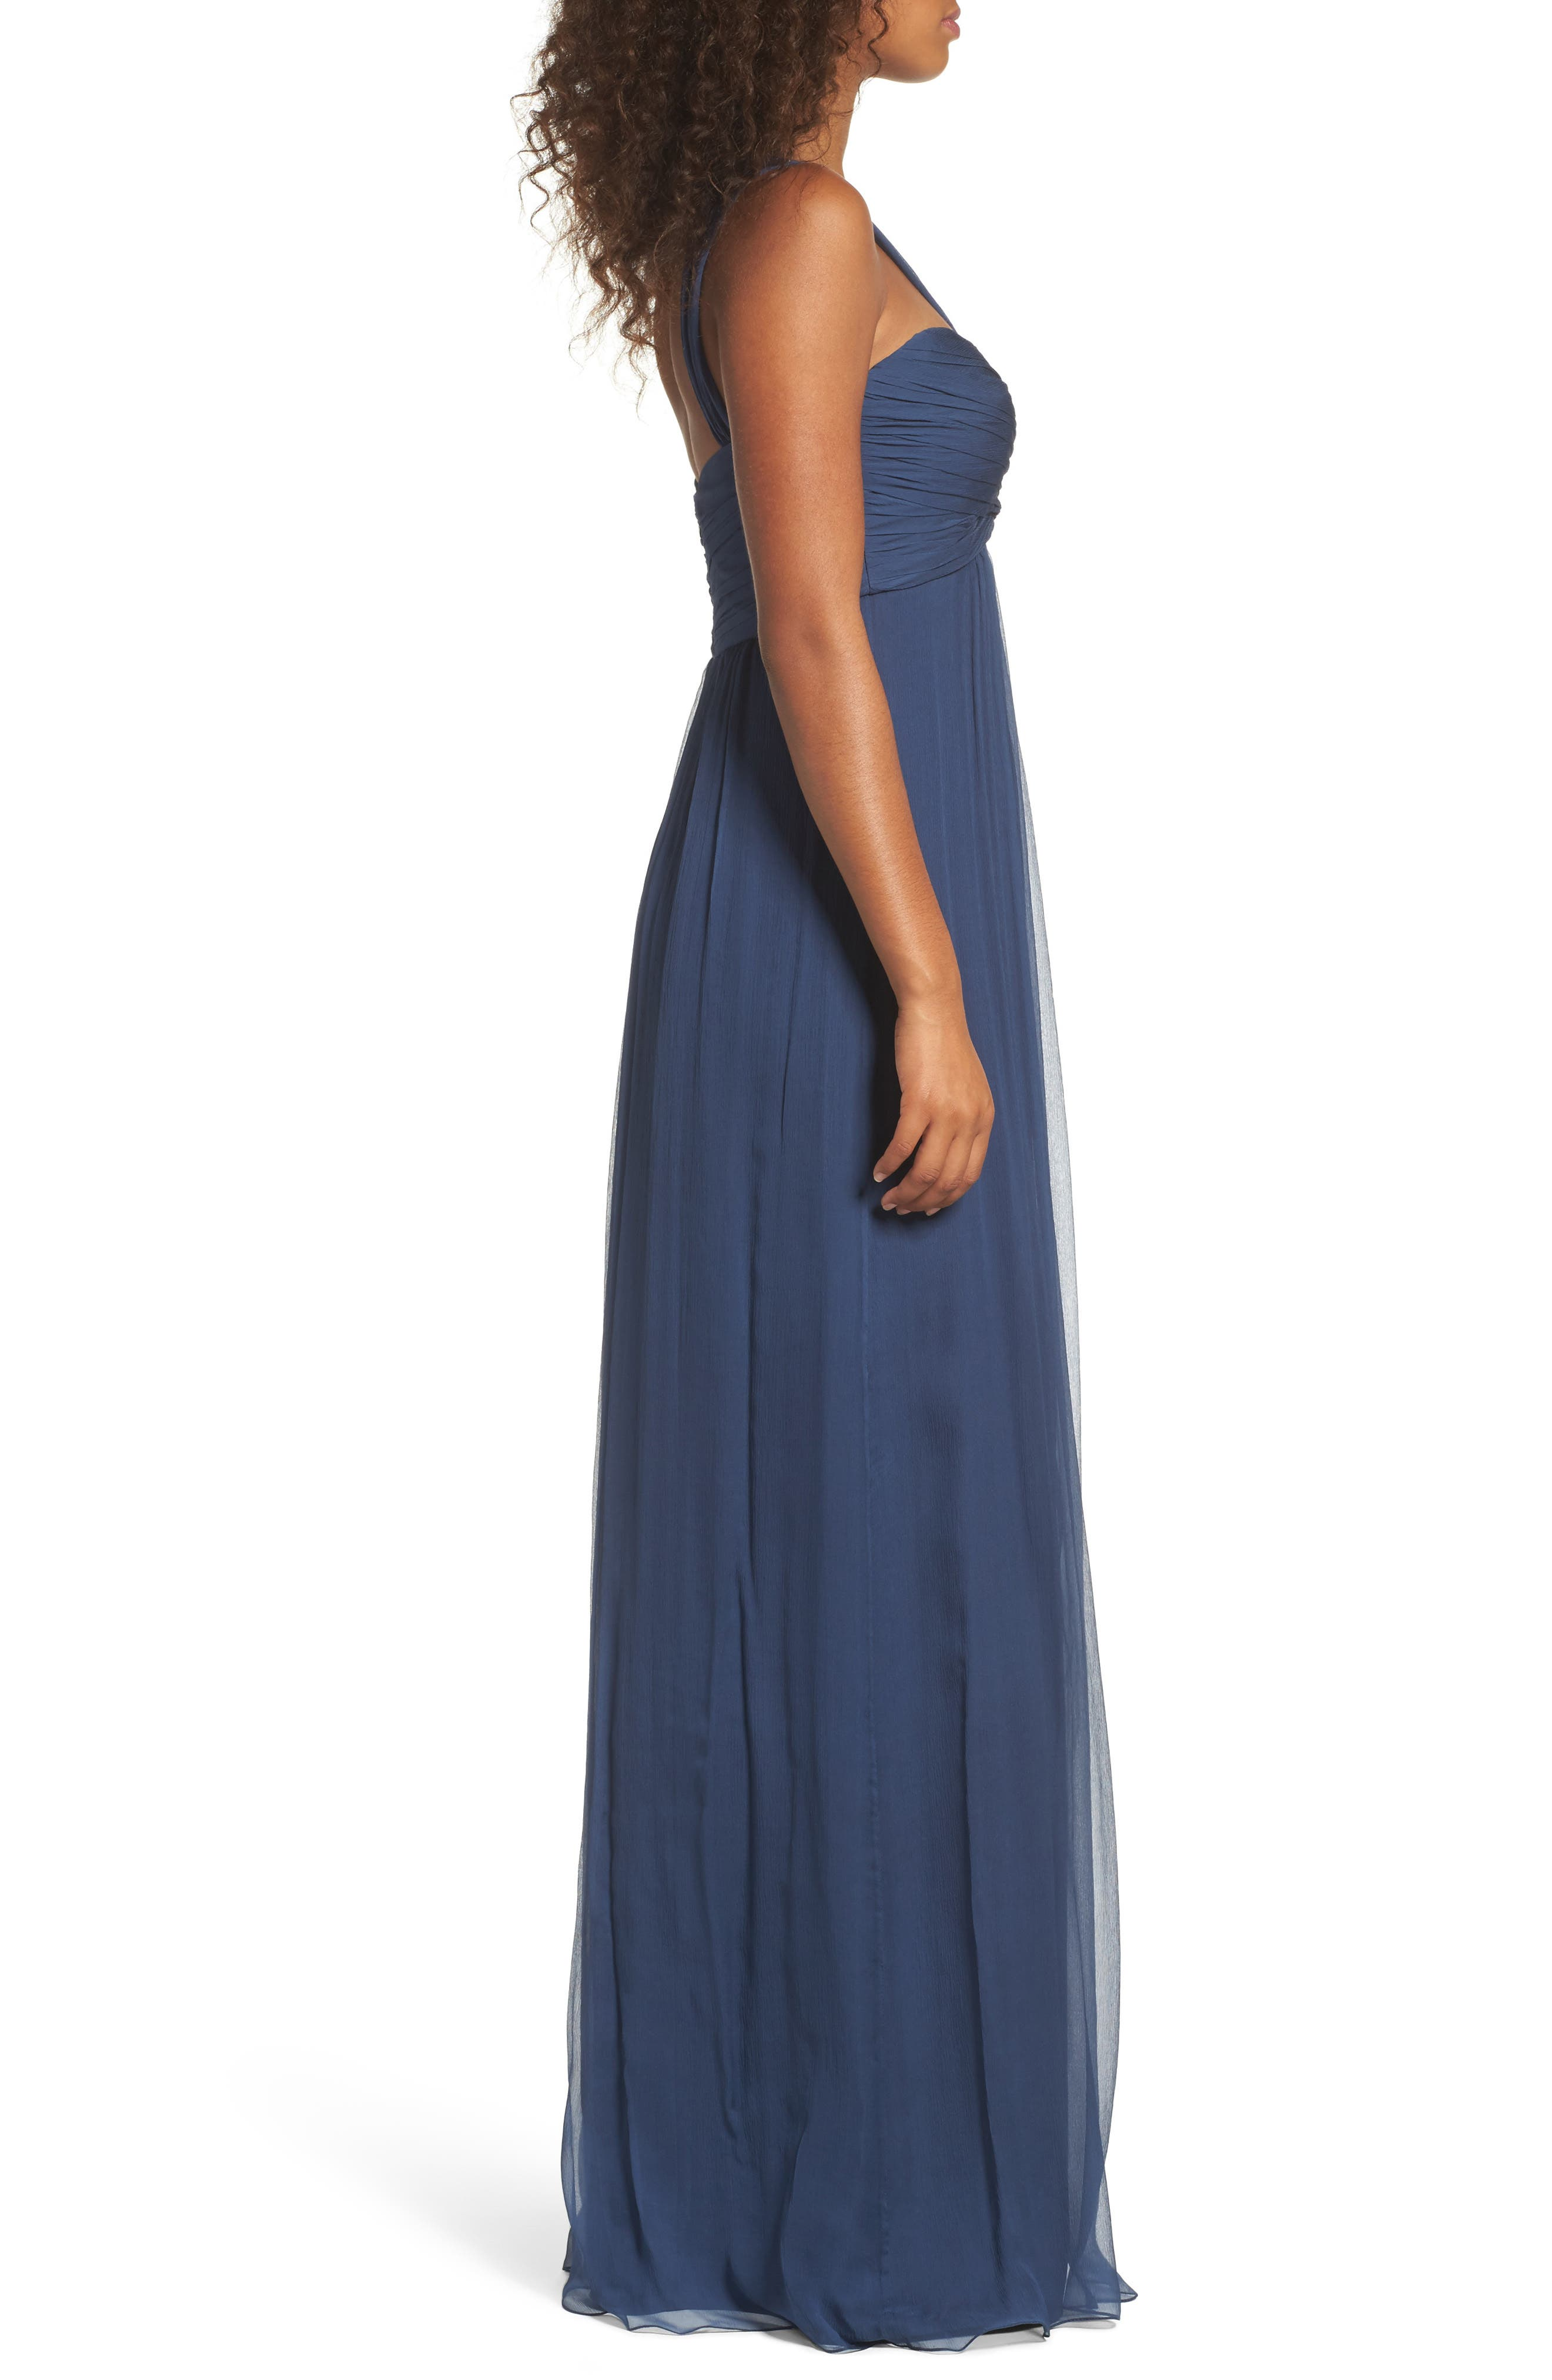 Corbin Crinkled Chiffon Empire Gown,                             Alternate thumbnail 6, color,